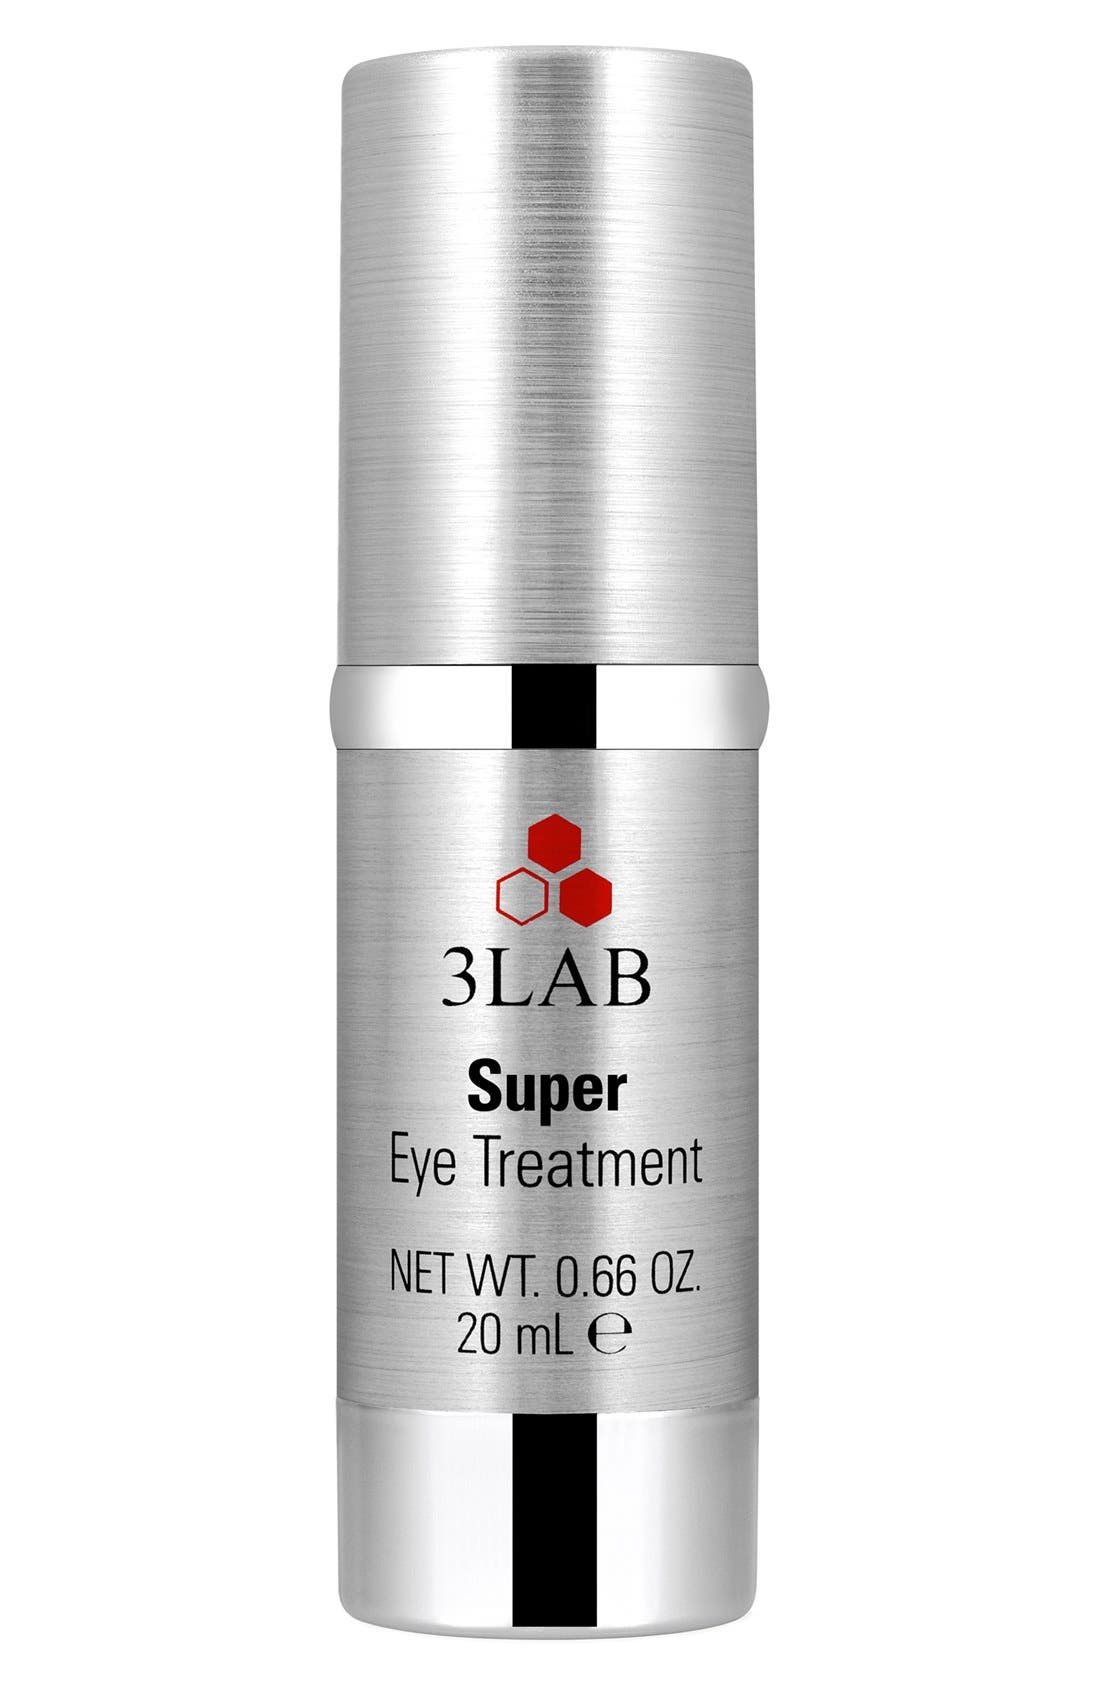 3LAB Super Eye Treatment